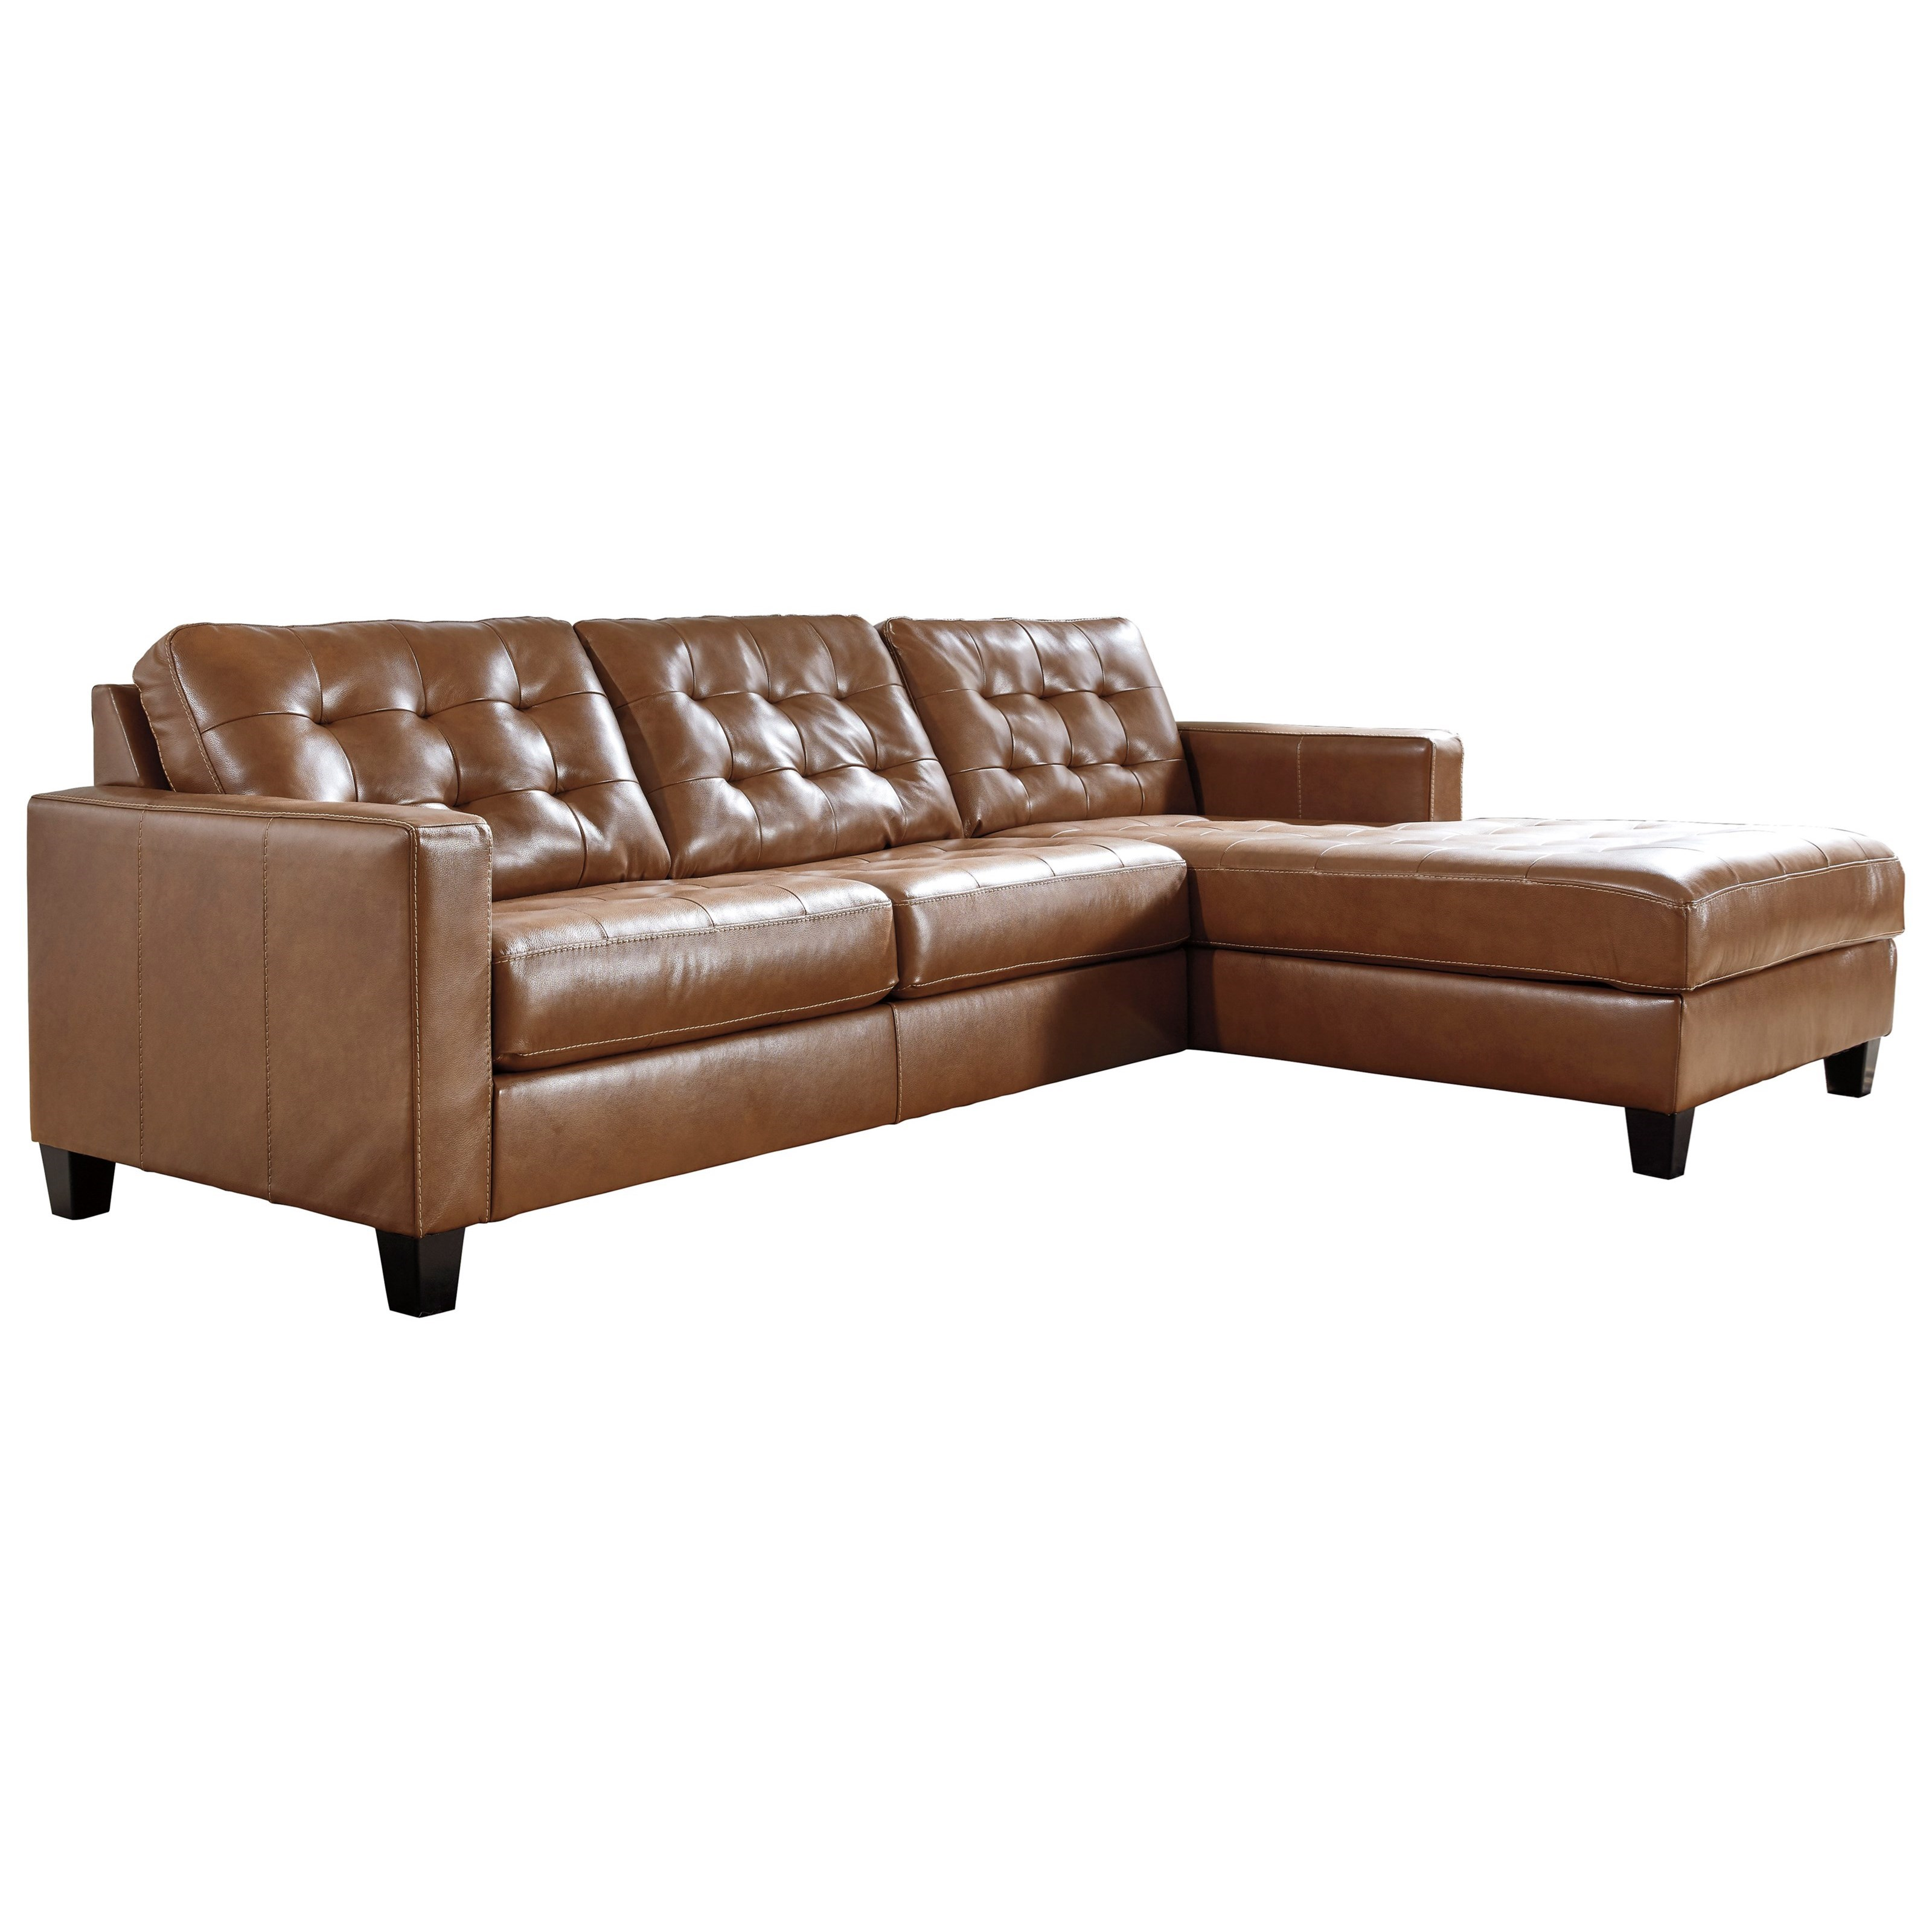 baskove 2 piece sectional